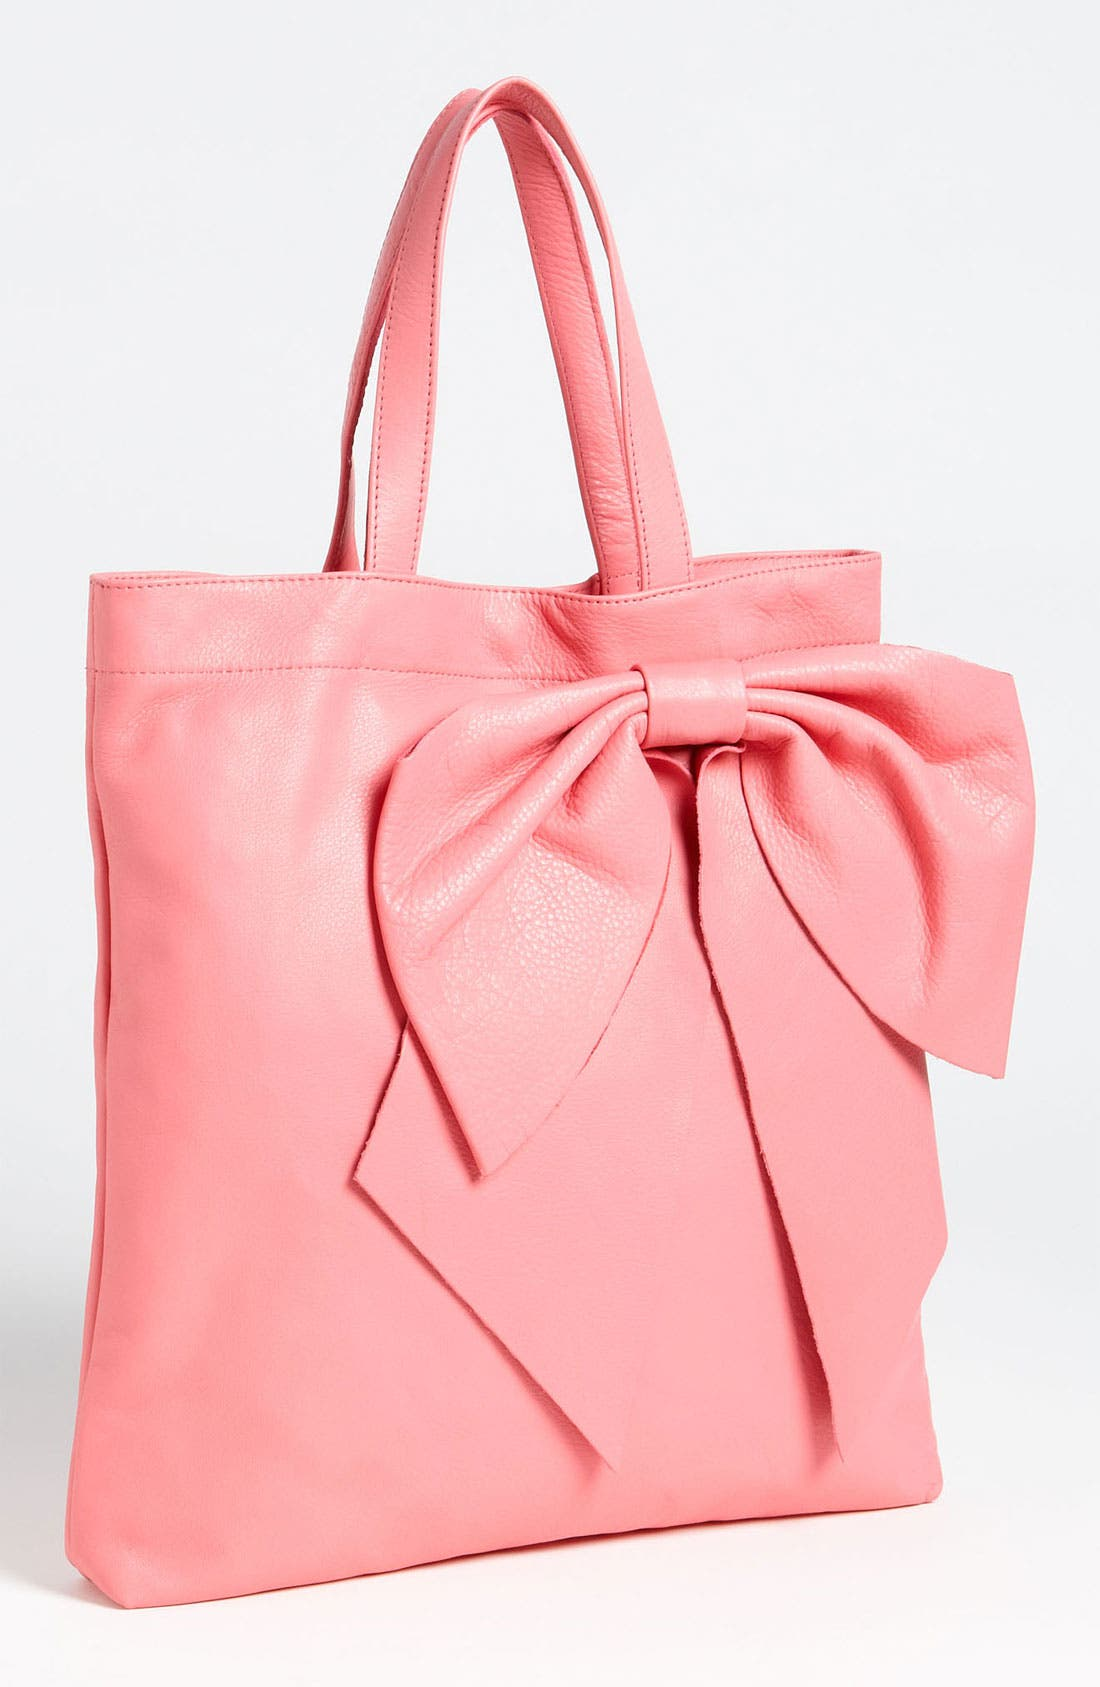 Main Image - RED Valentino 'Bow' Calfskin Tote